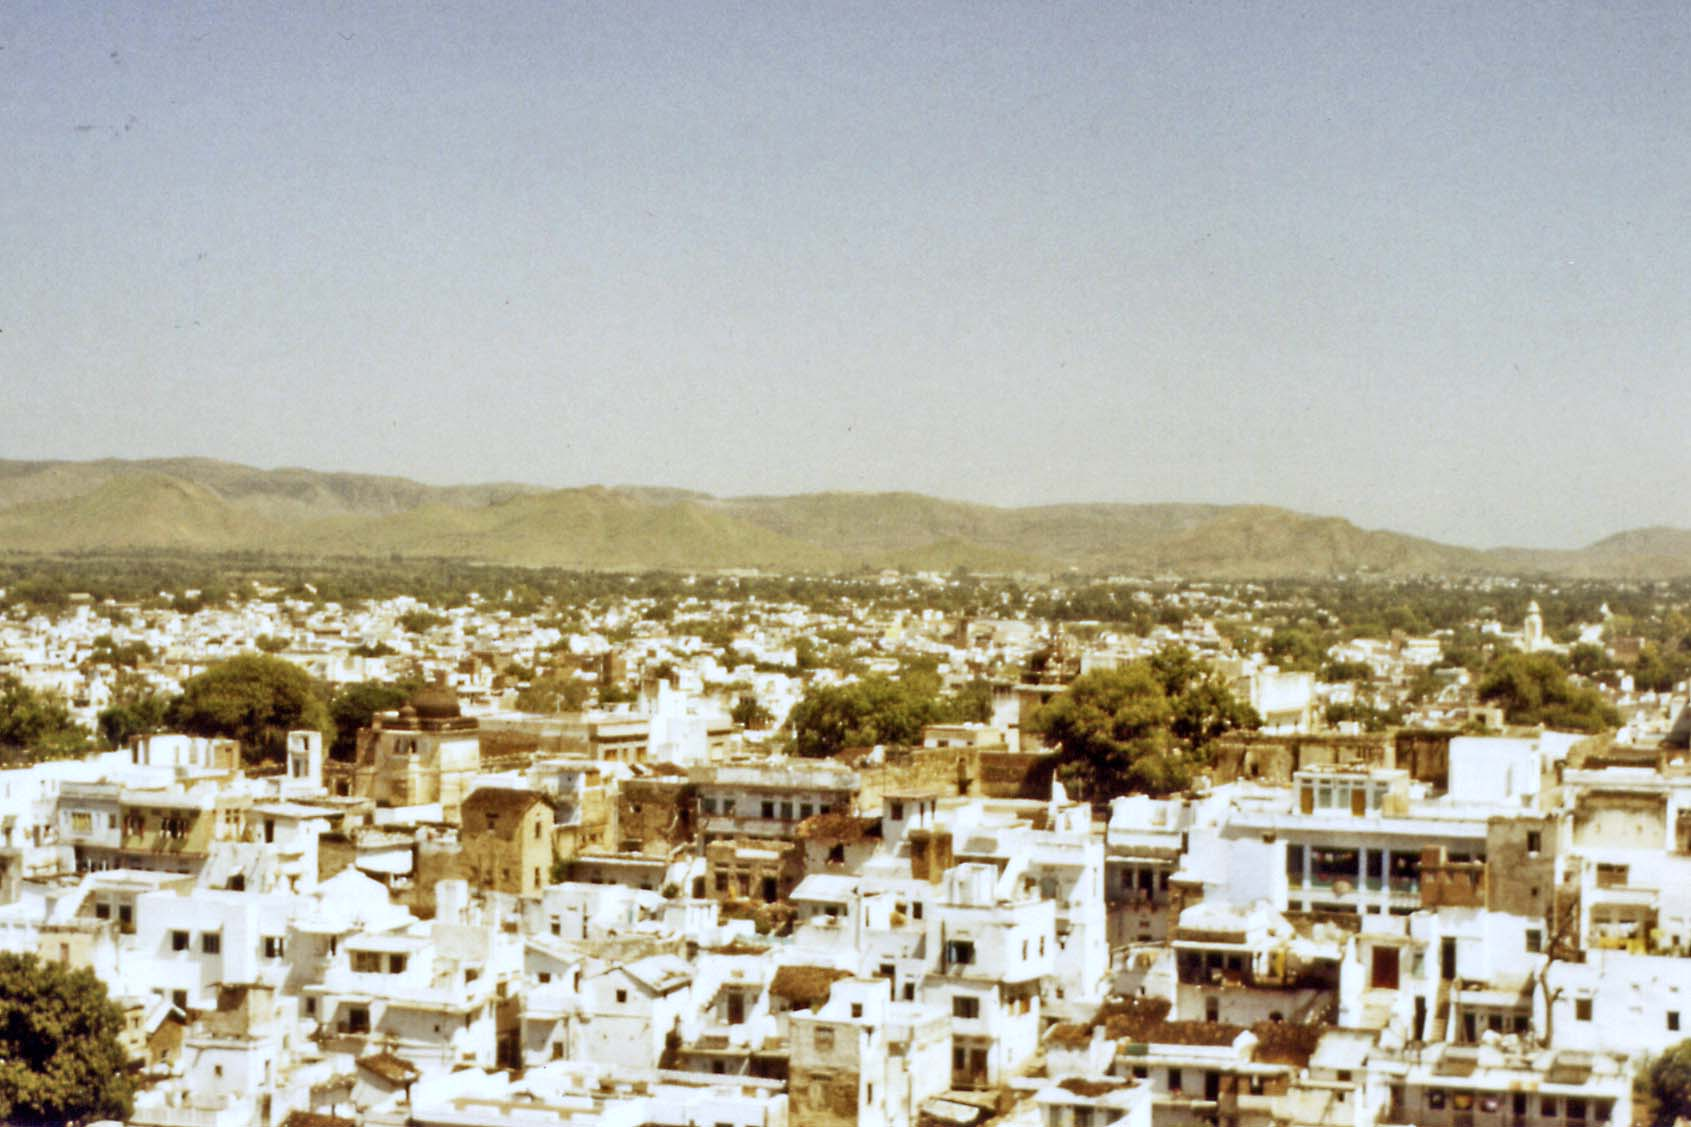 Vieuw from the fort in Udaipur